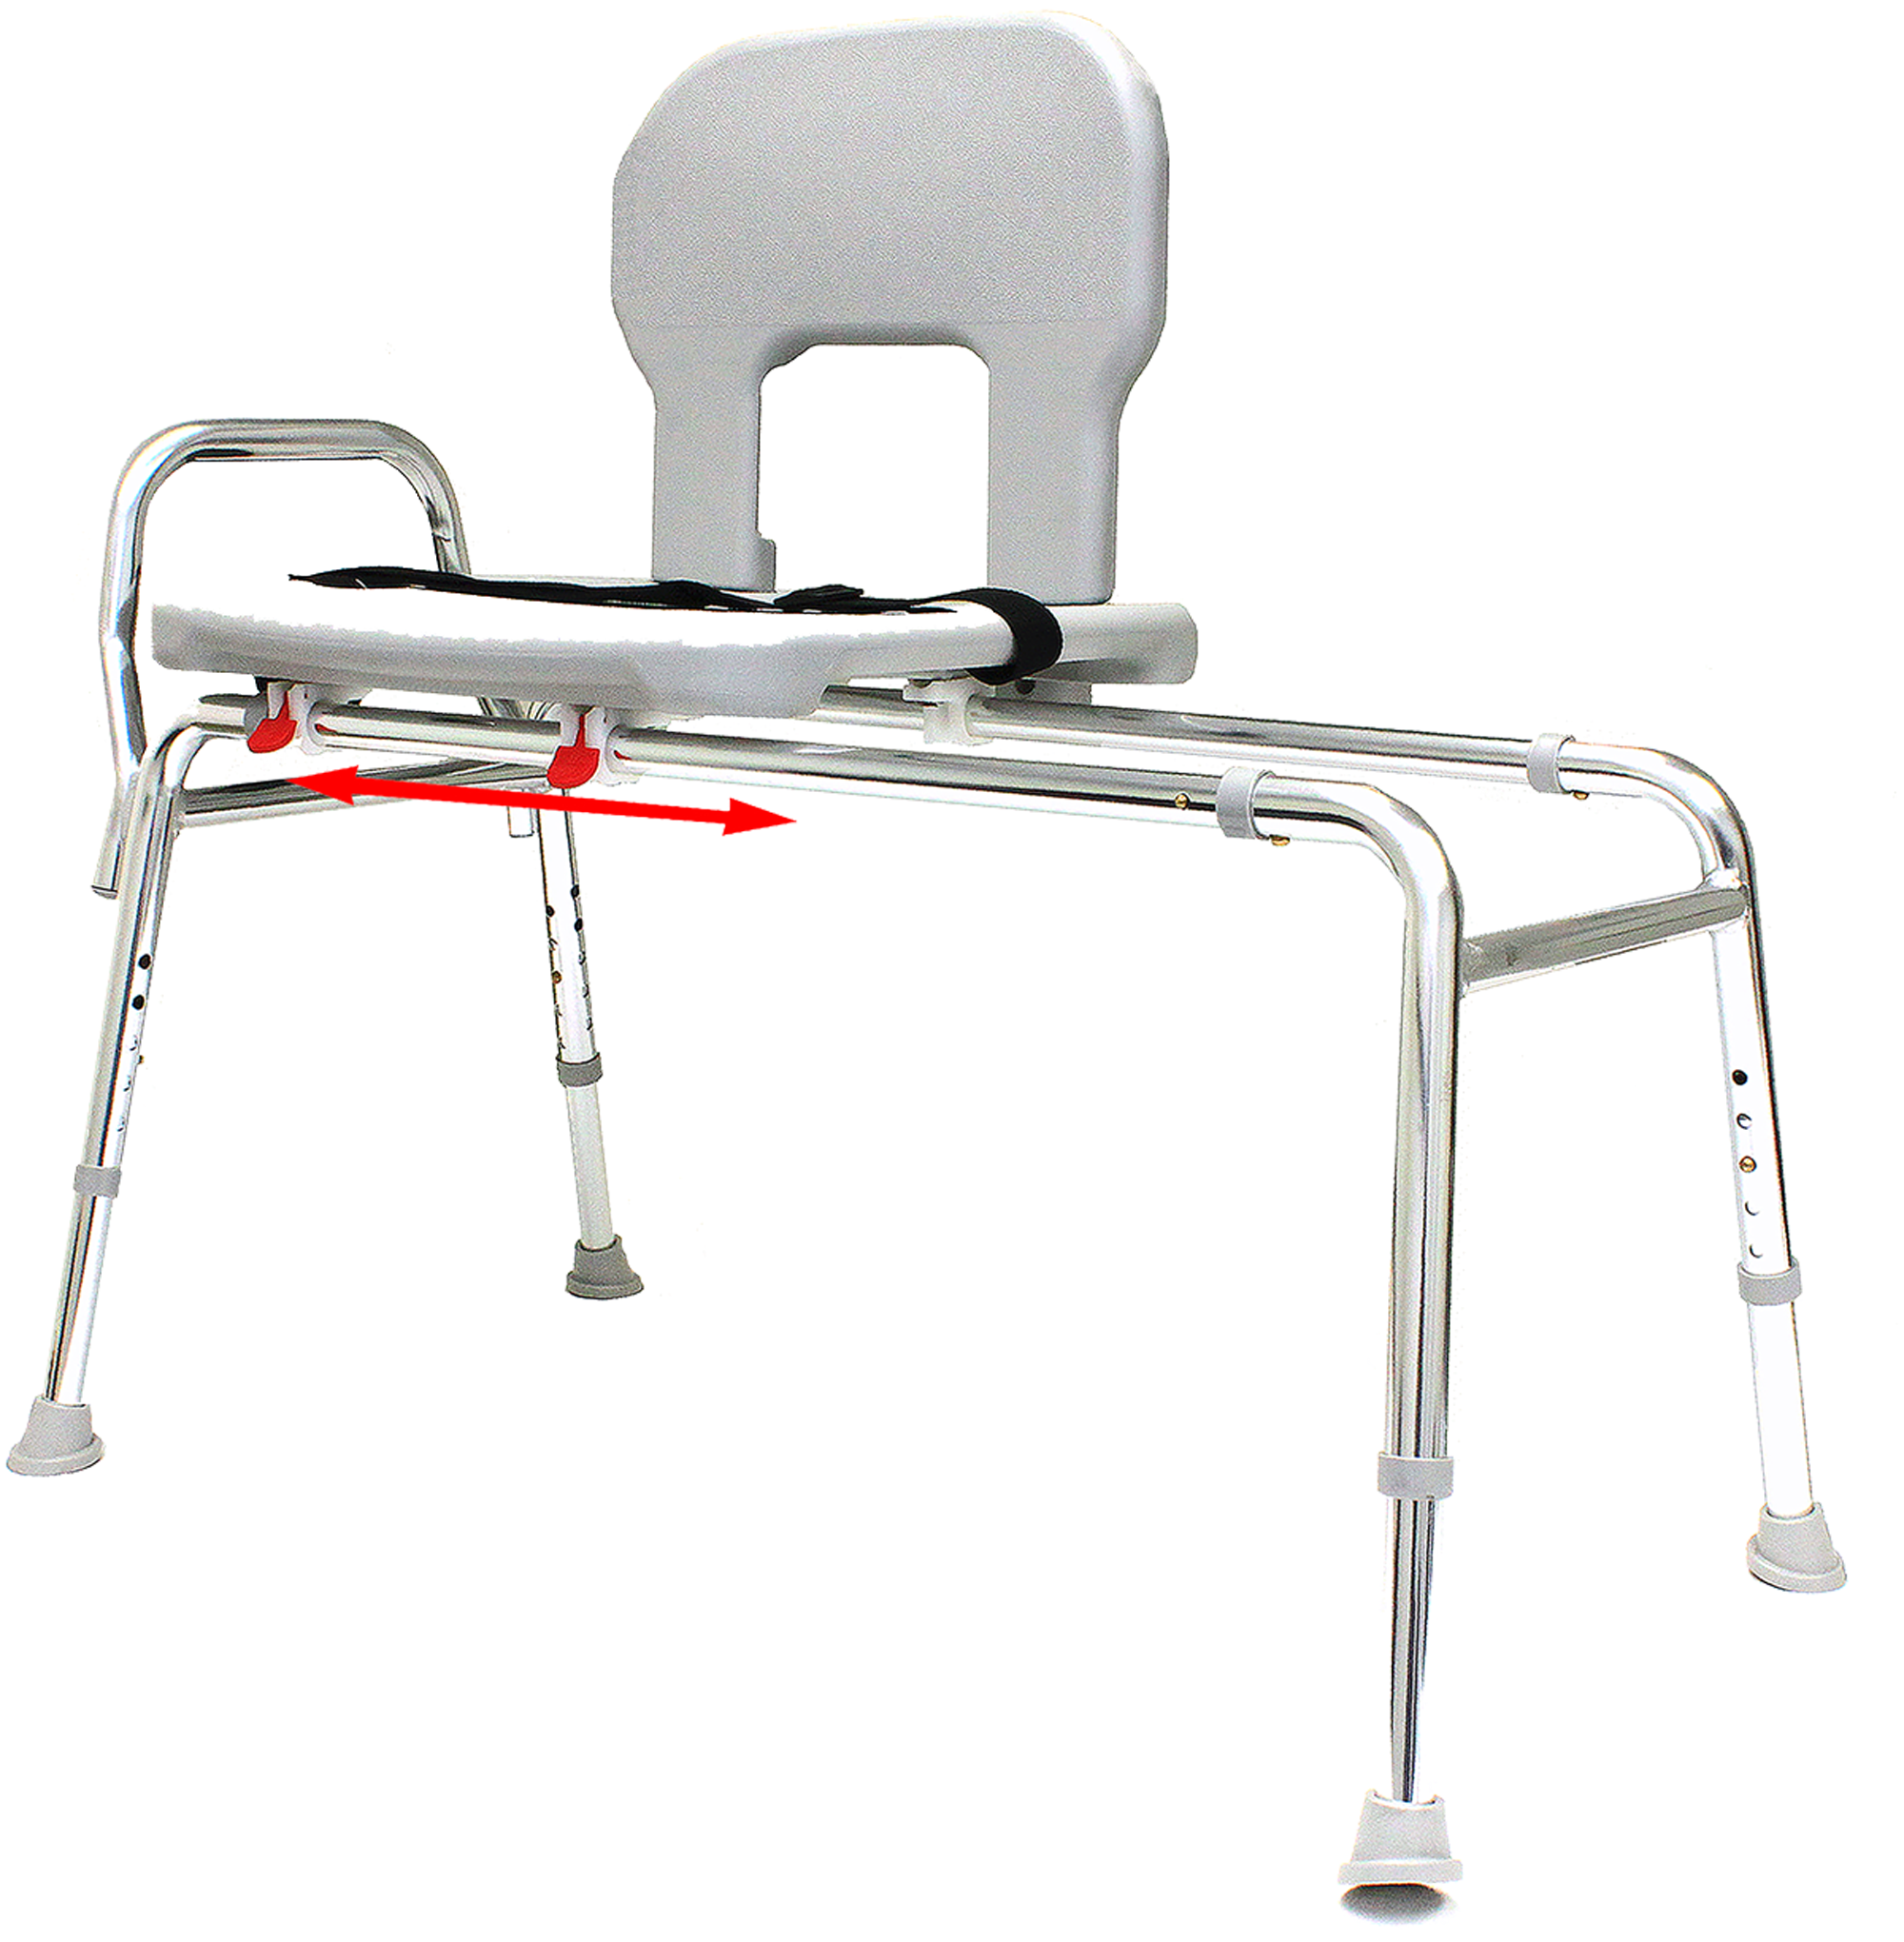 "Bariatric Sliding Bath Transfer Bench (55291) - Extra Long (Base Length: 48"" - 49"") - Heavy-Duty Shower Bathtub Chair - Eagle Health Supplies"